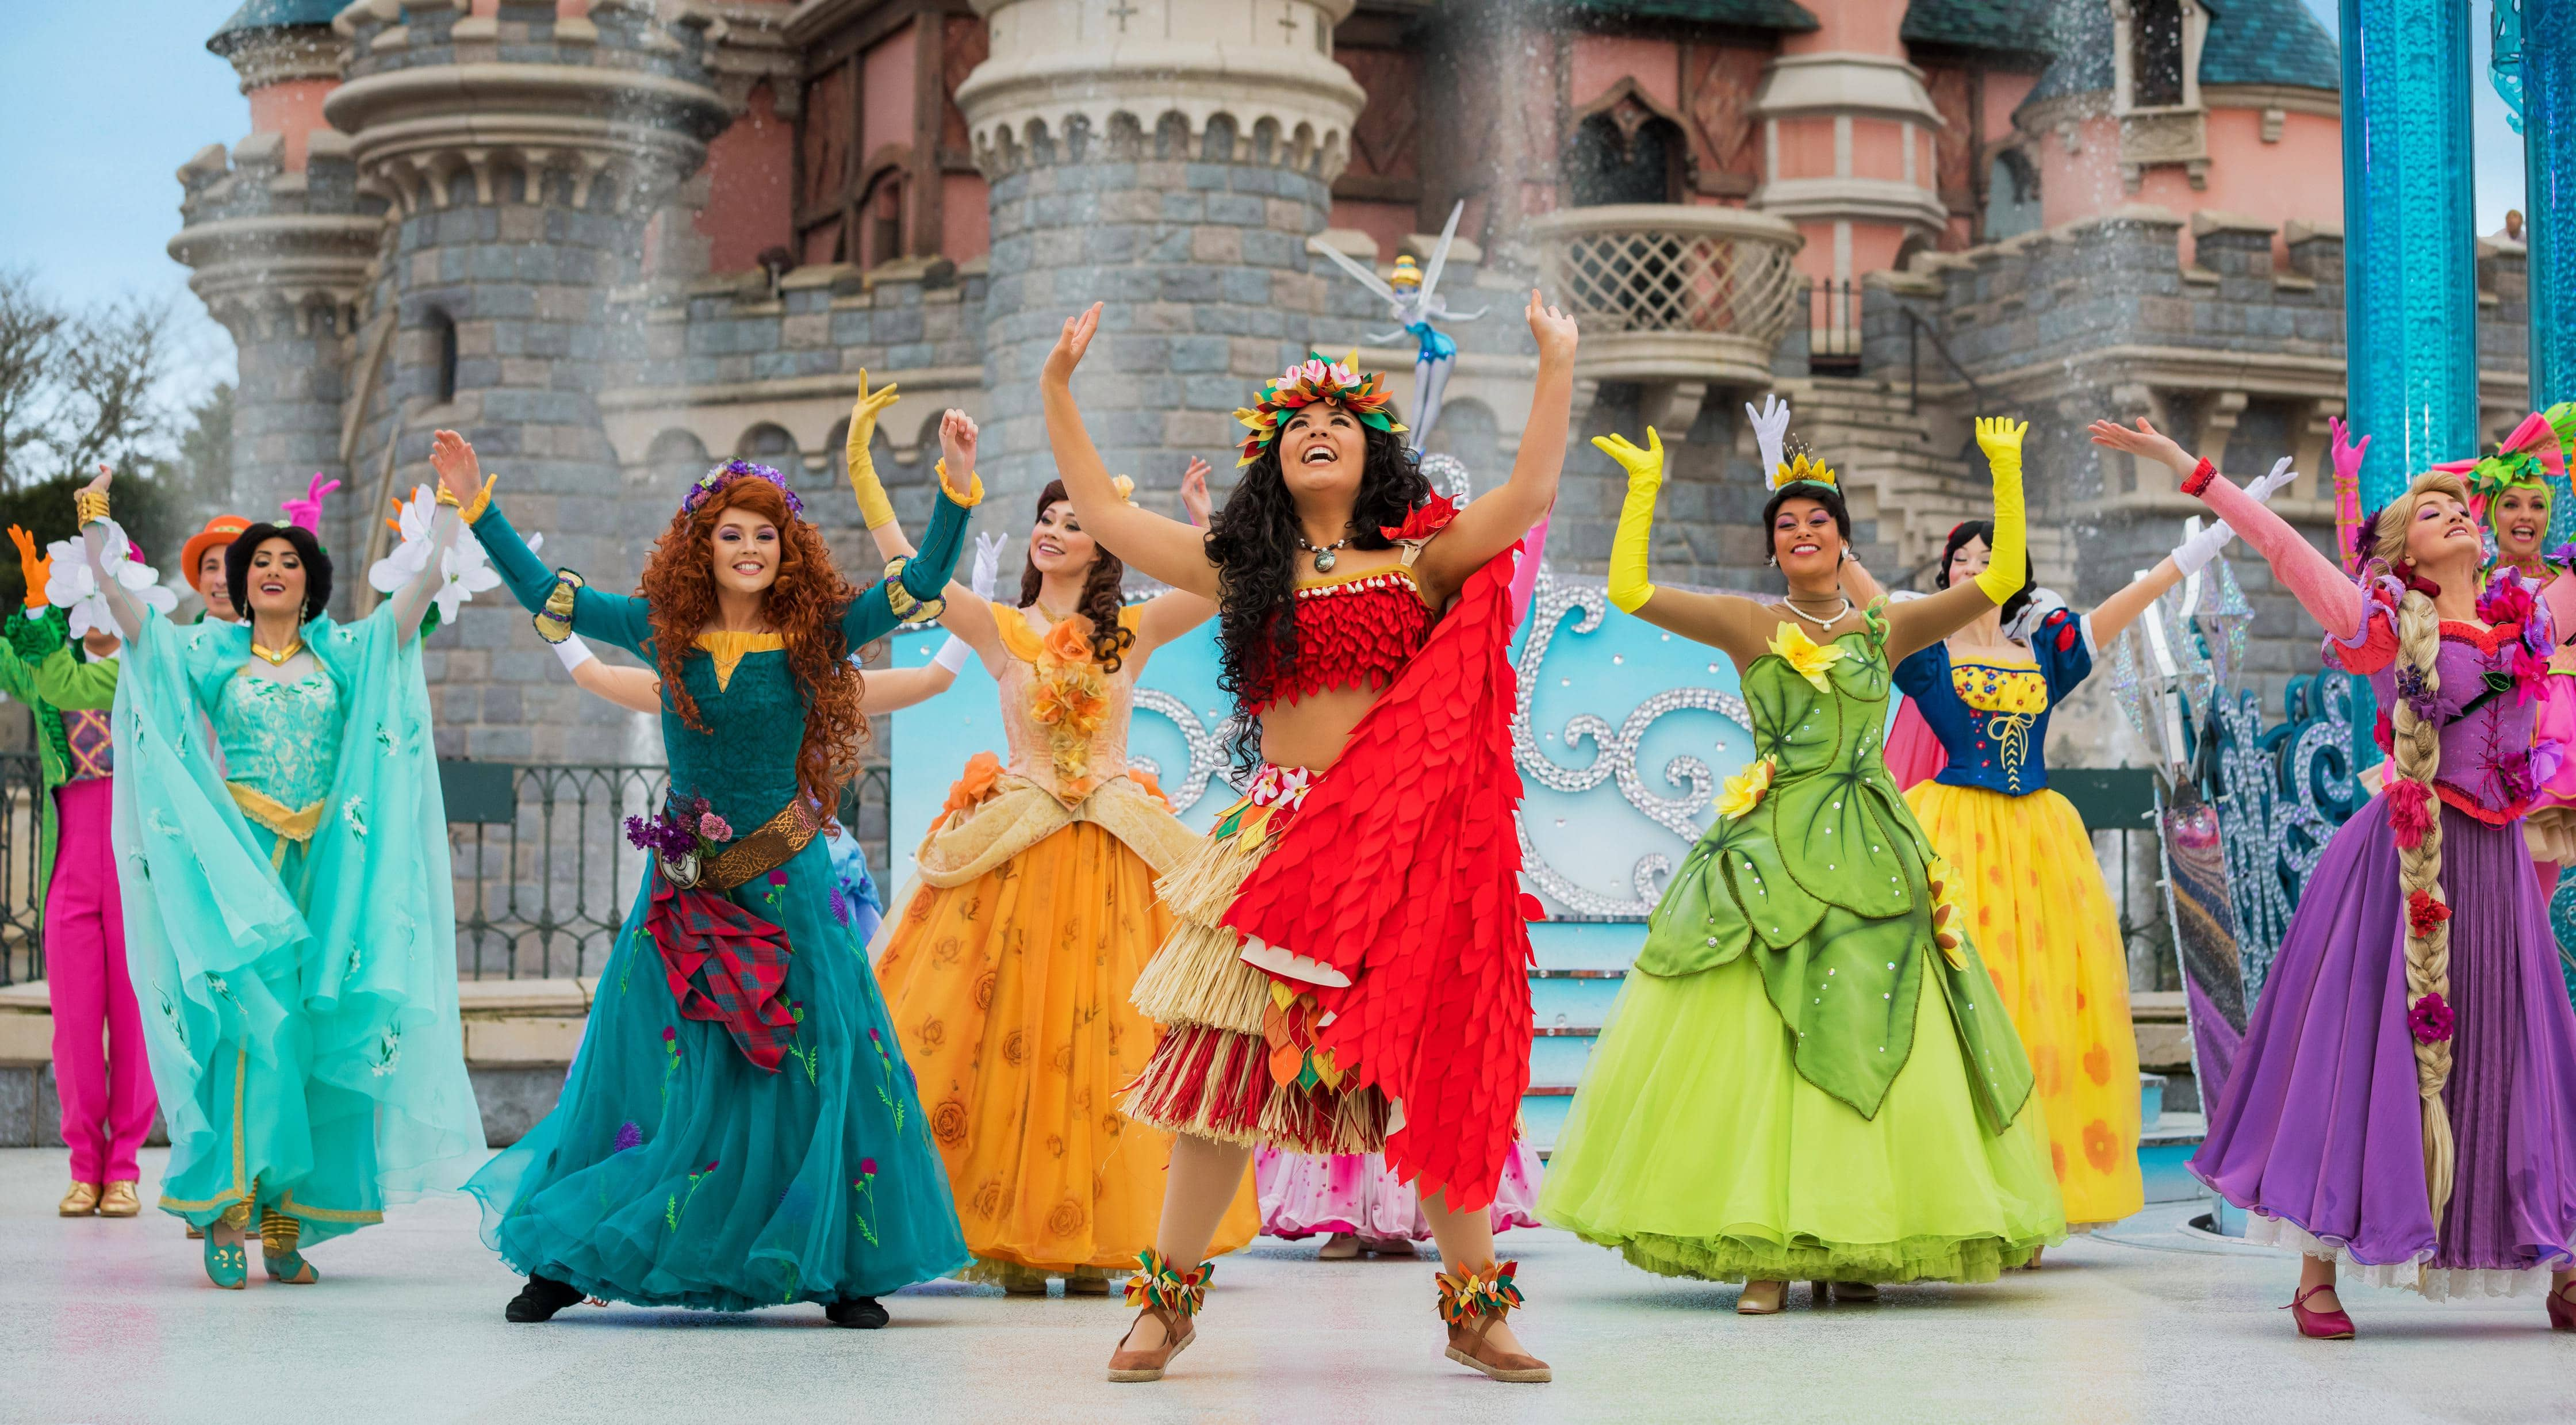 Festival Of Pirates And Princesses 2019 Travel To The Magic